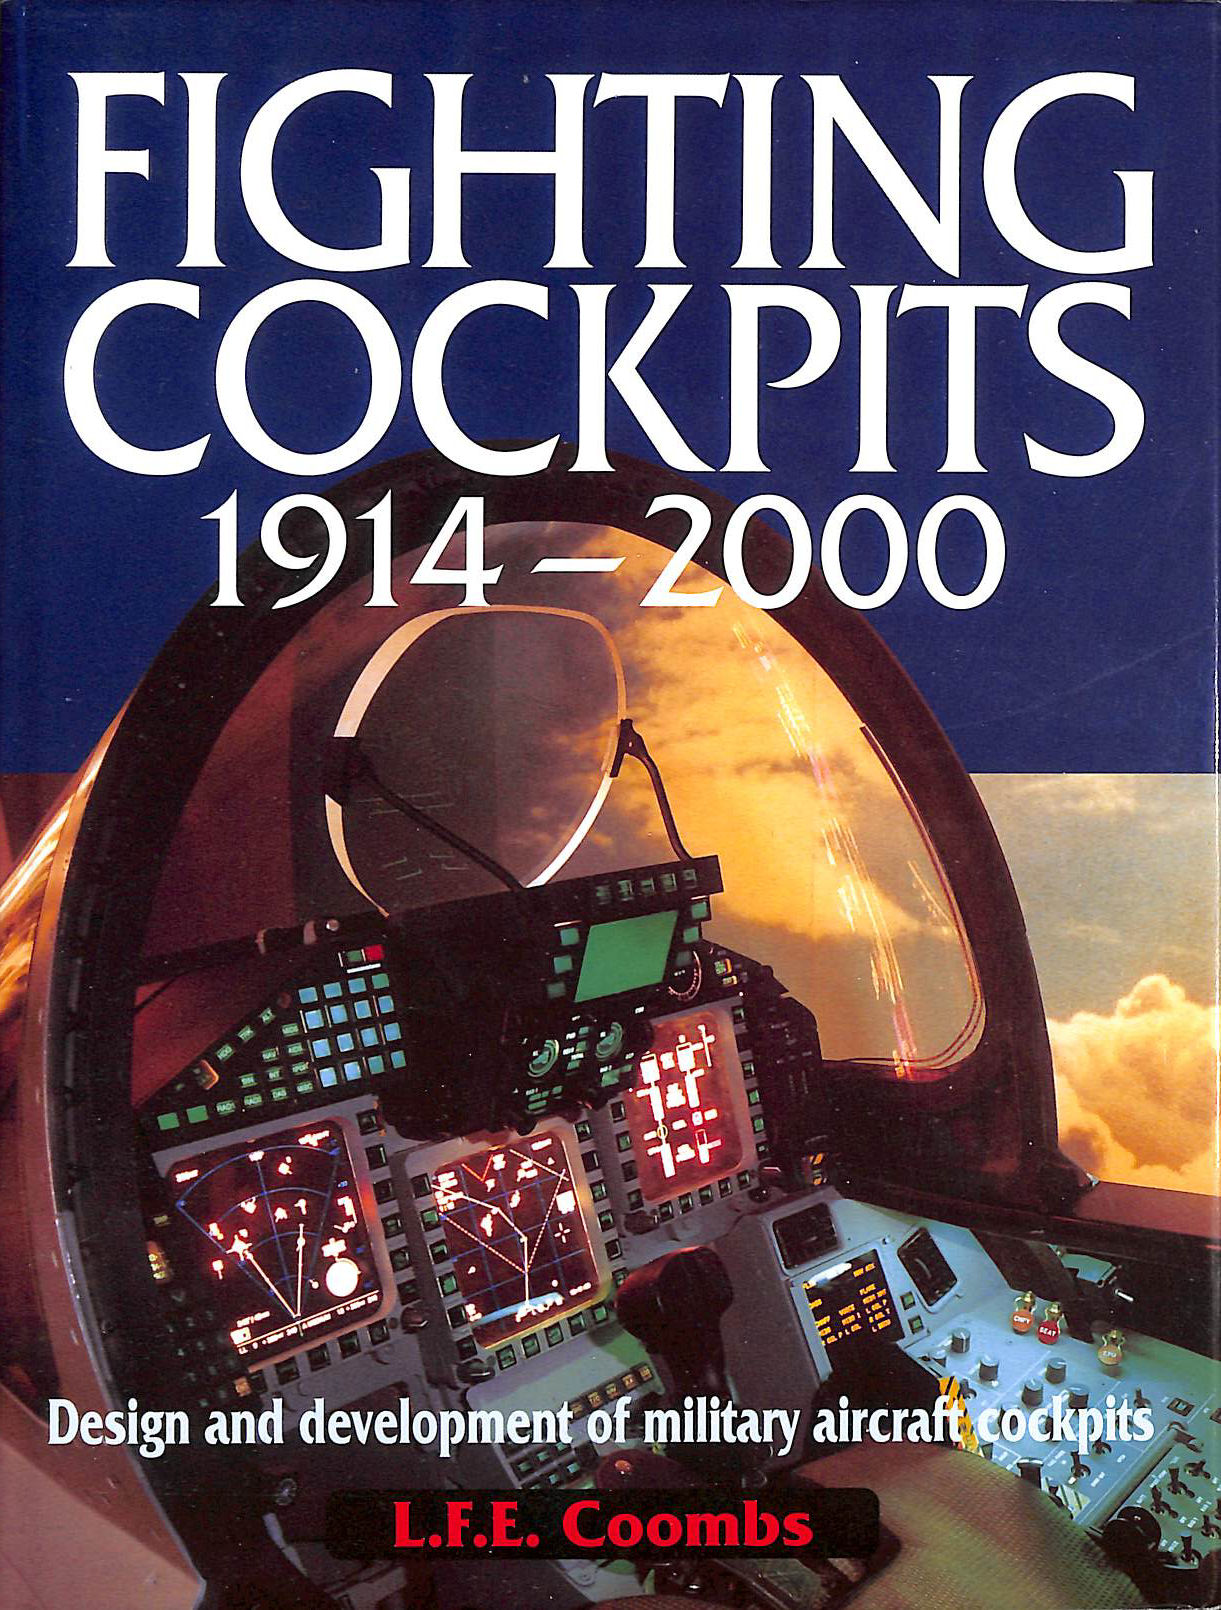 Image for Fighting Cockpits 1914-2000: Design and Development of Military Aircraft Cockpits